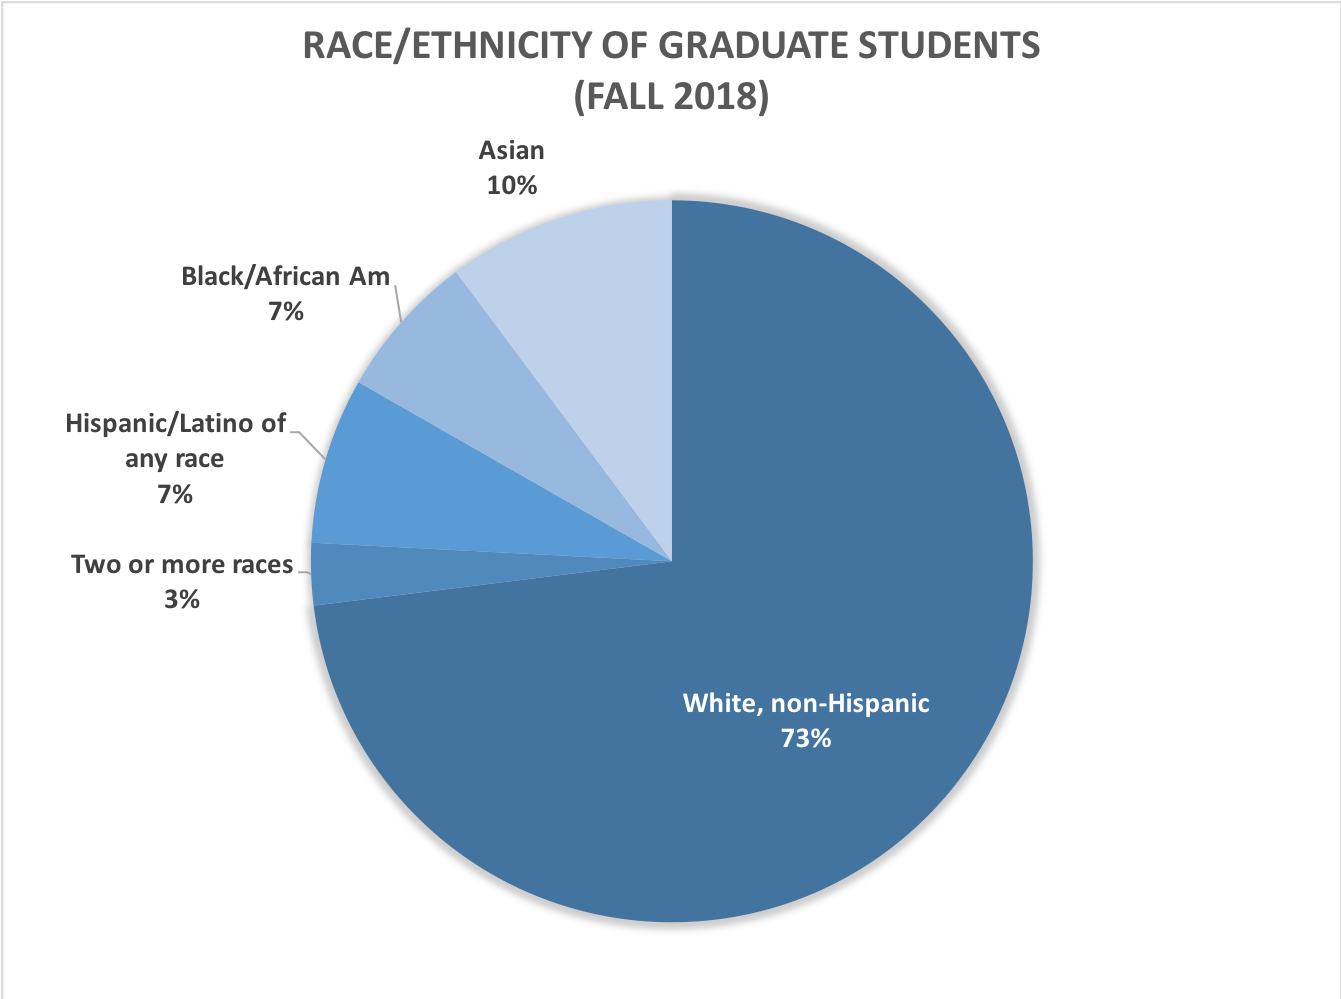 Race and ethnicity of graduate students